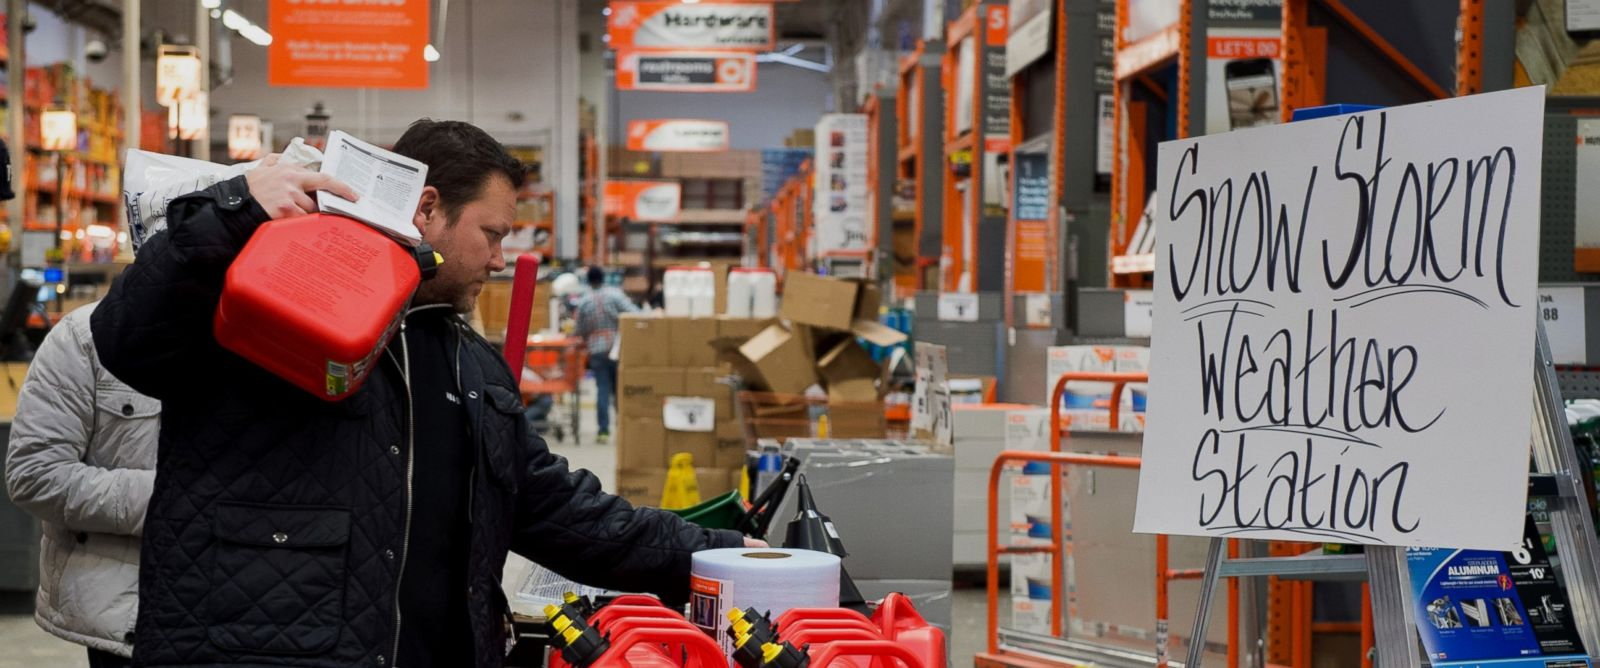 PHOTO: A customer shops for supplies to prepare for the winter storm at a Home Depot Inc. store in Secaucus, N.J. on Jan. 26, 2015.